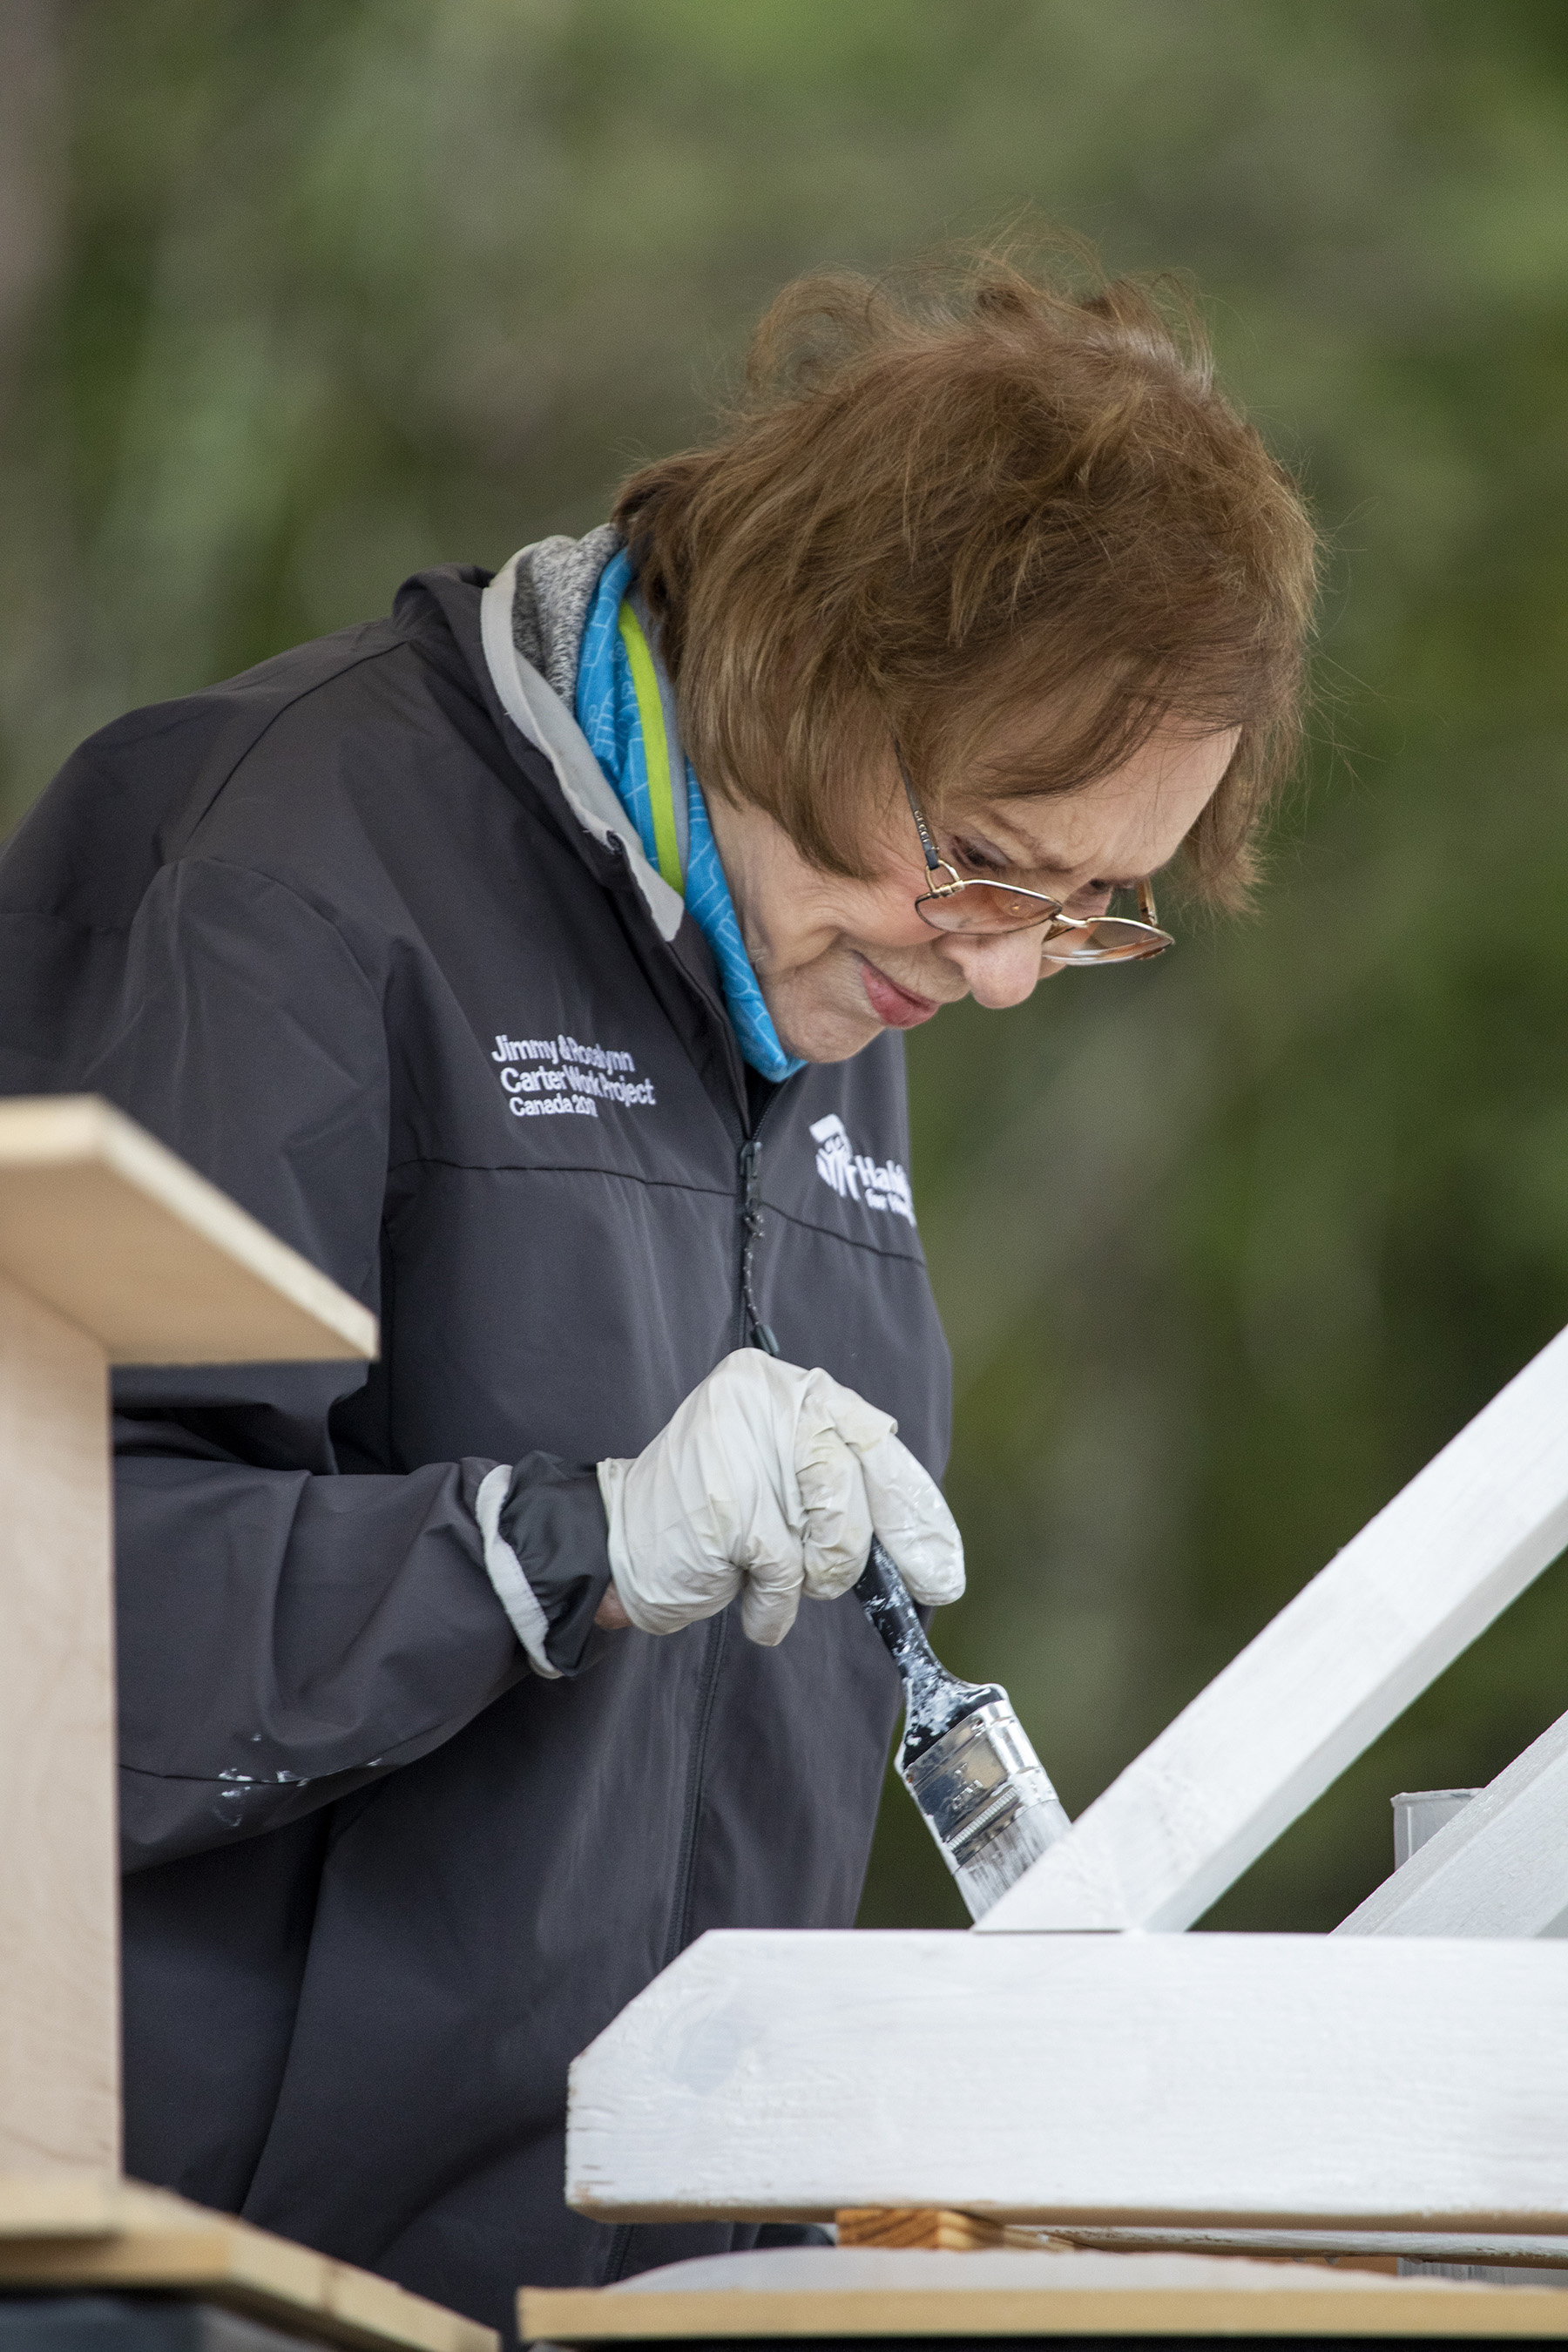 Former First Lady Rosalynn Carter paints corbels for new Habitat for Humanity homes in Nashville on Monday, Oct. 7. She and former President Jimmy Carter have volunteered with Habitat since 1984.